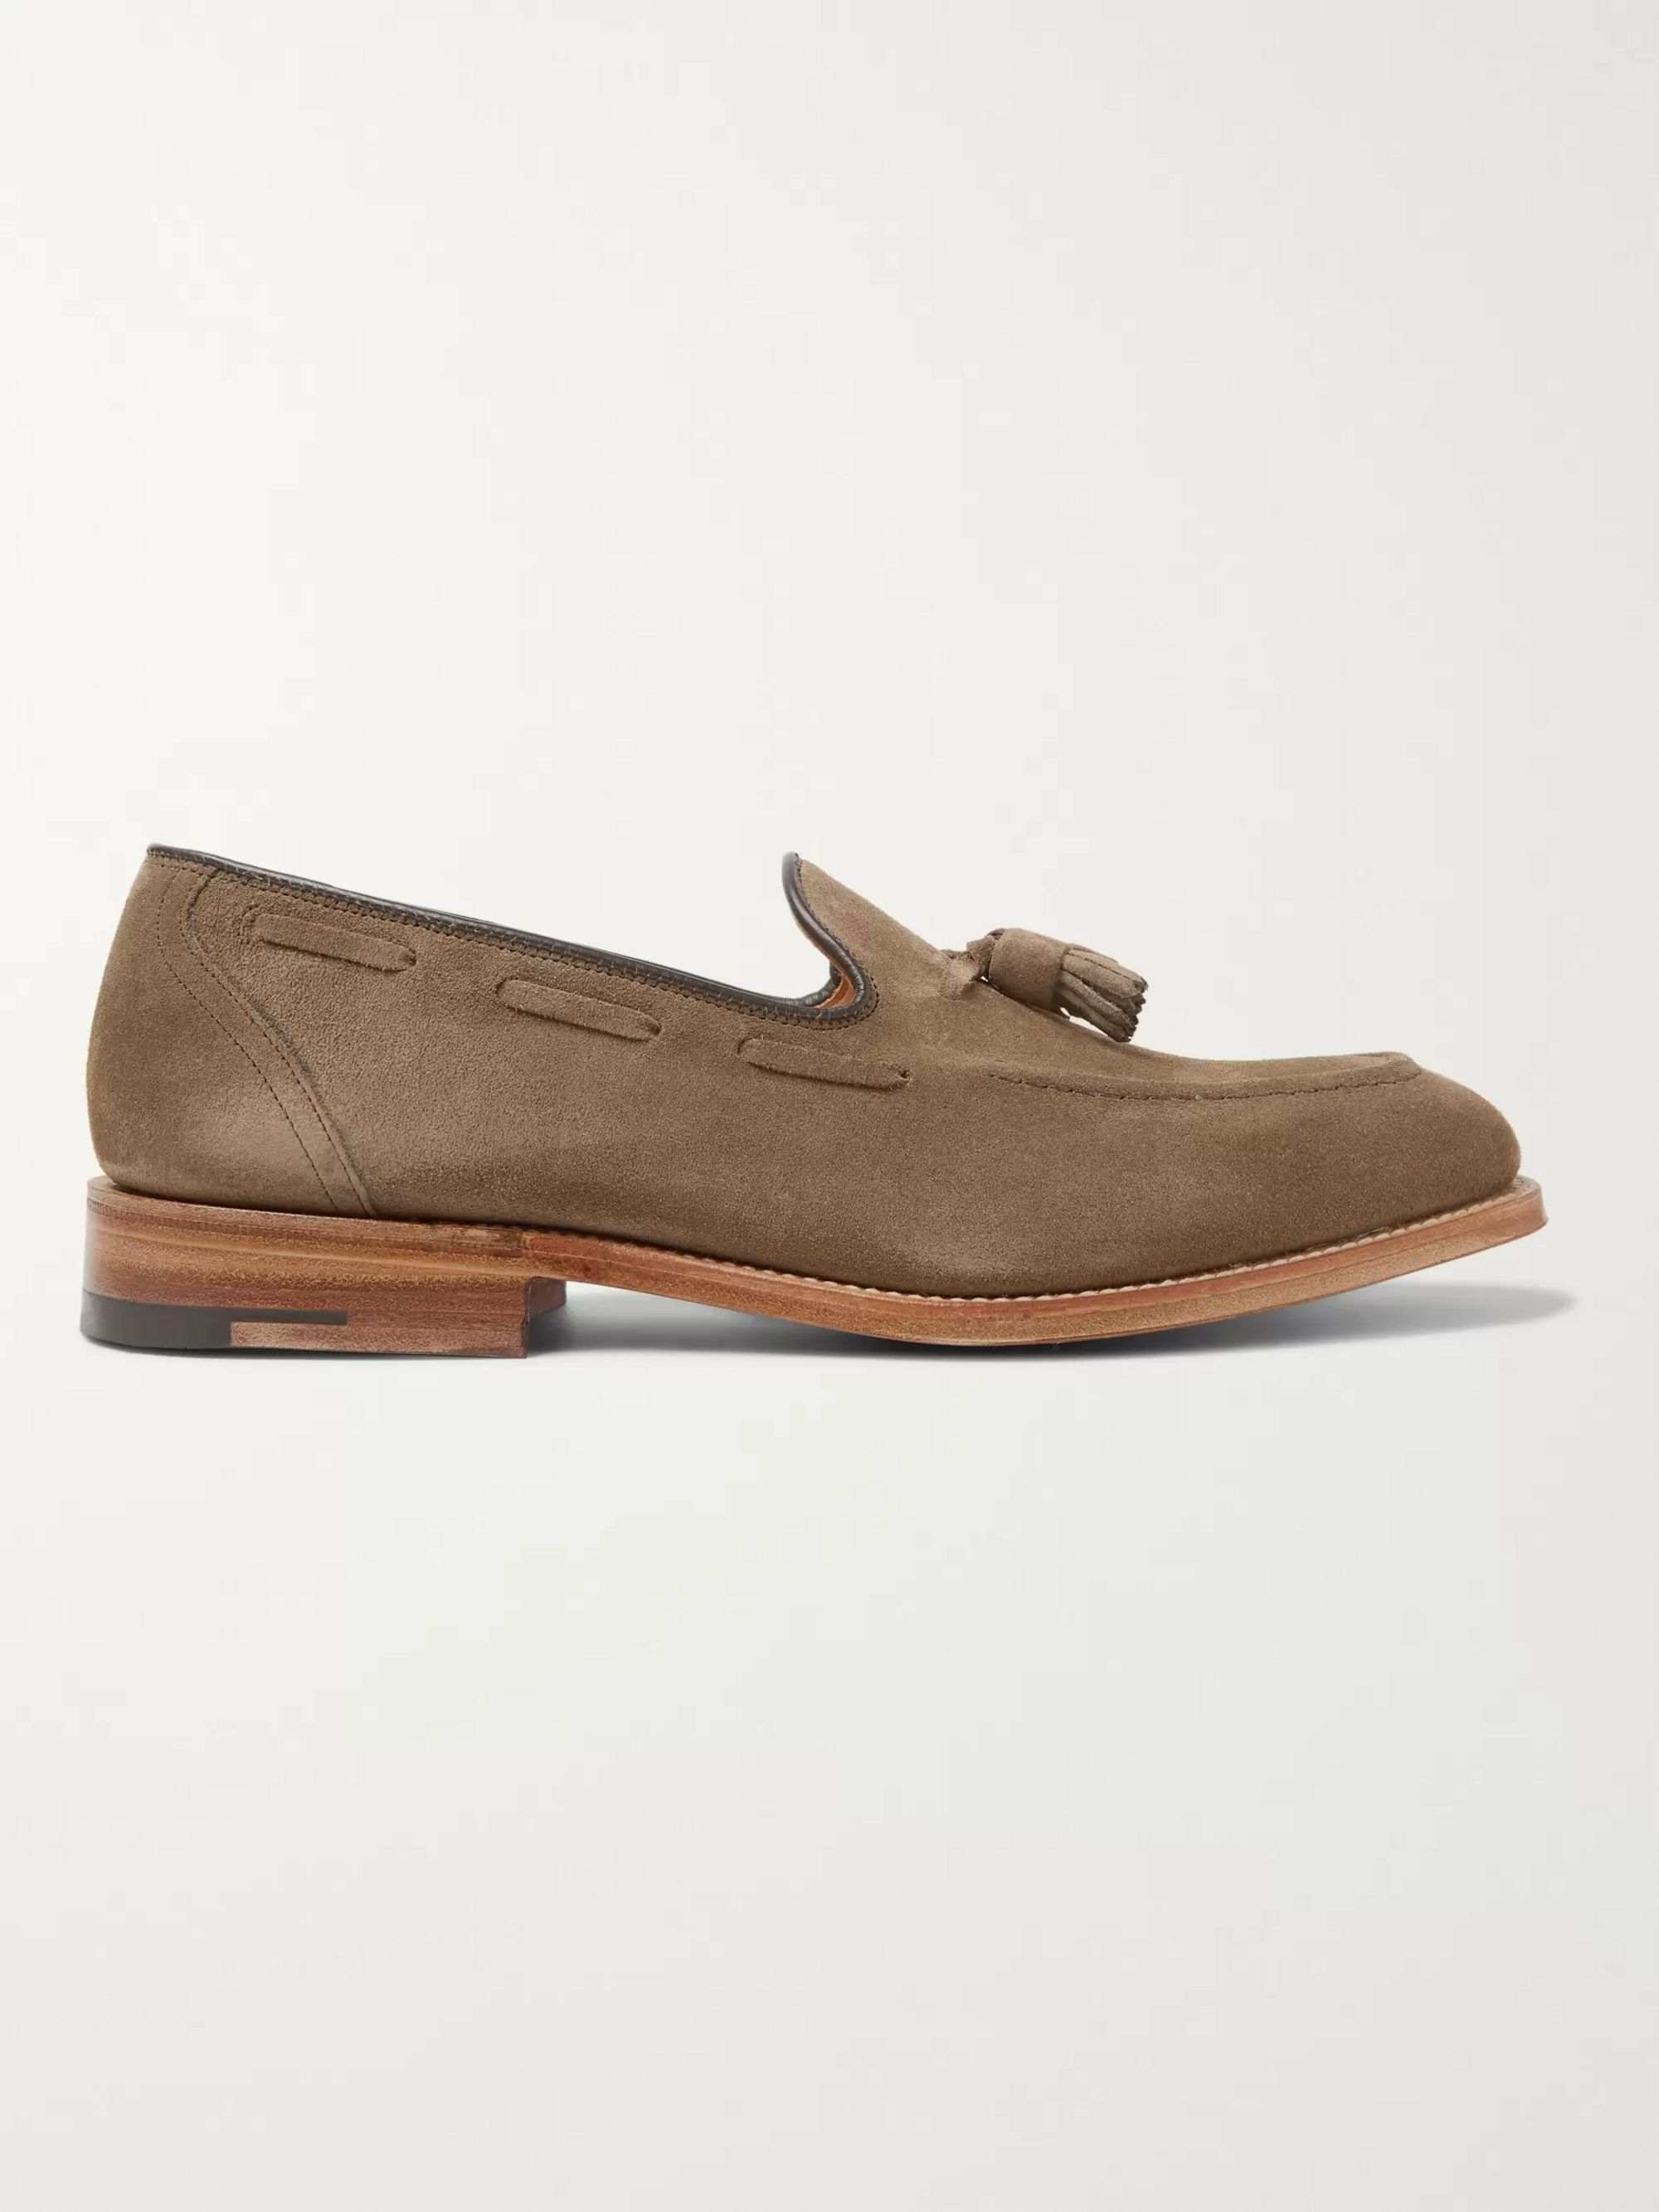 Church's Kingsley 2 Suede Tasselled Loafers